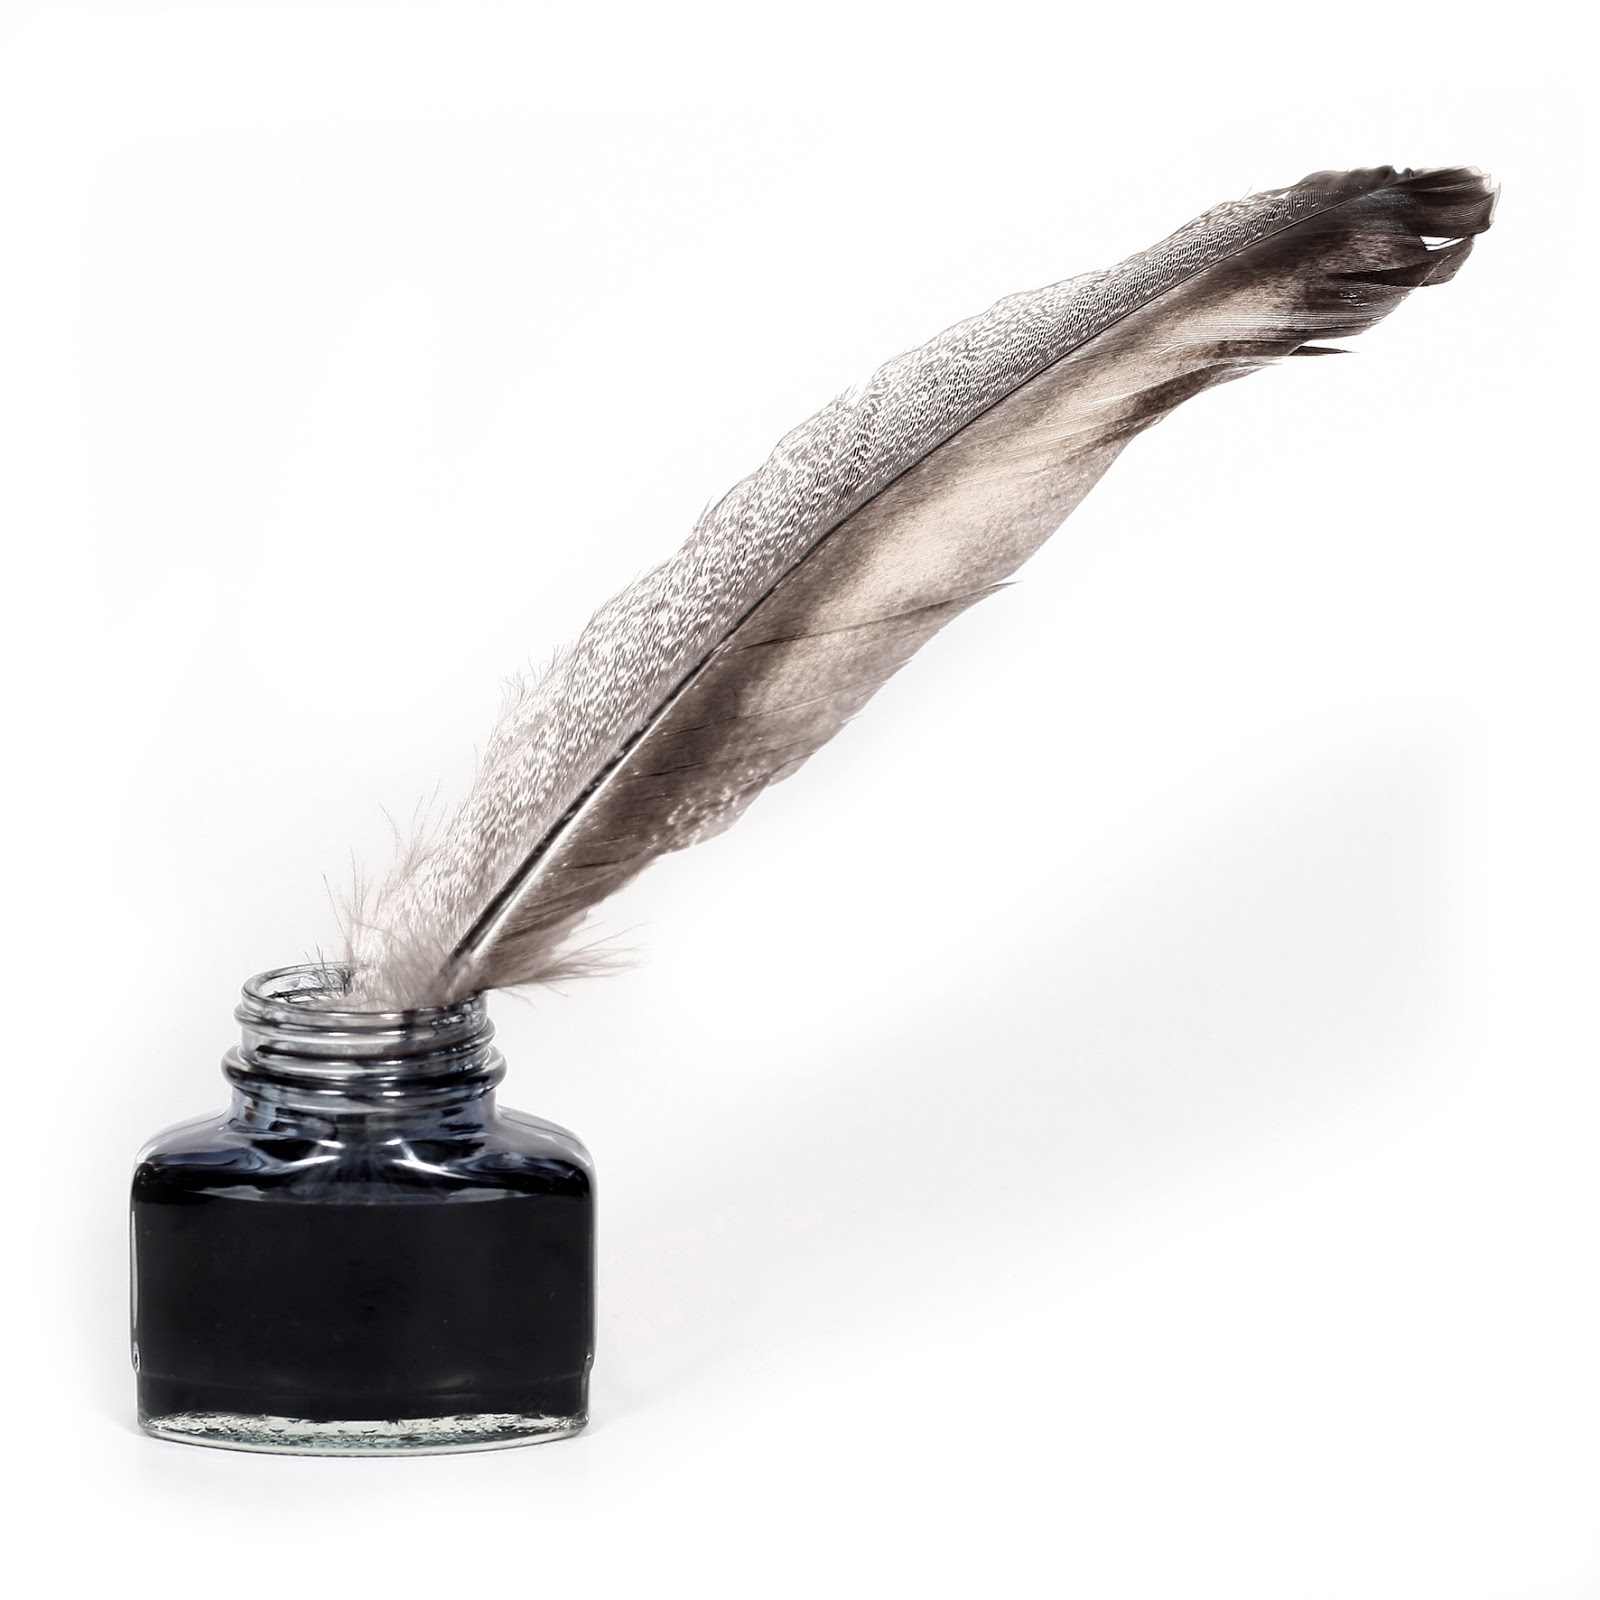 Simpler Times: Making Your Own Quill Pen and Black Walnut Ink